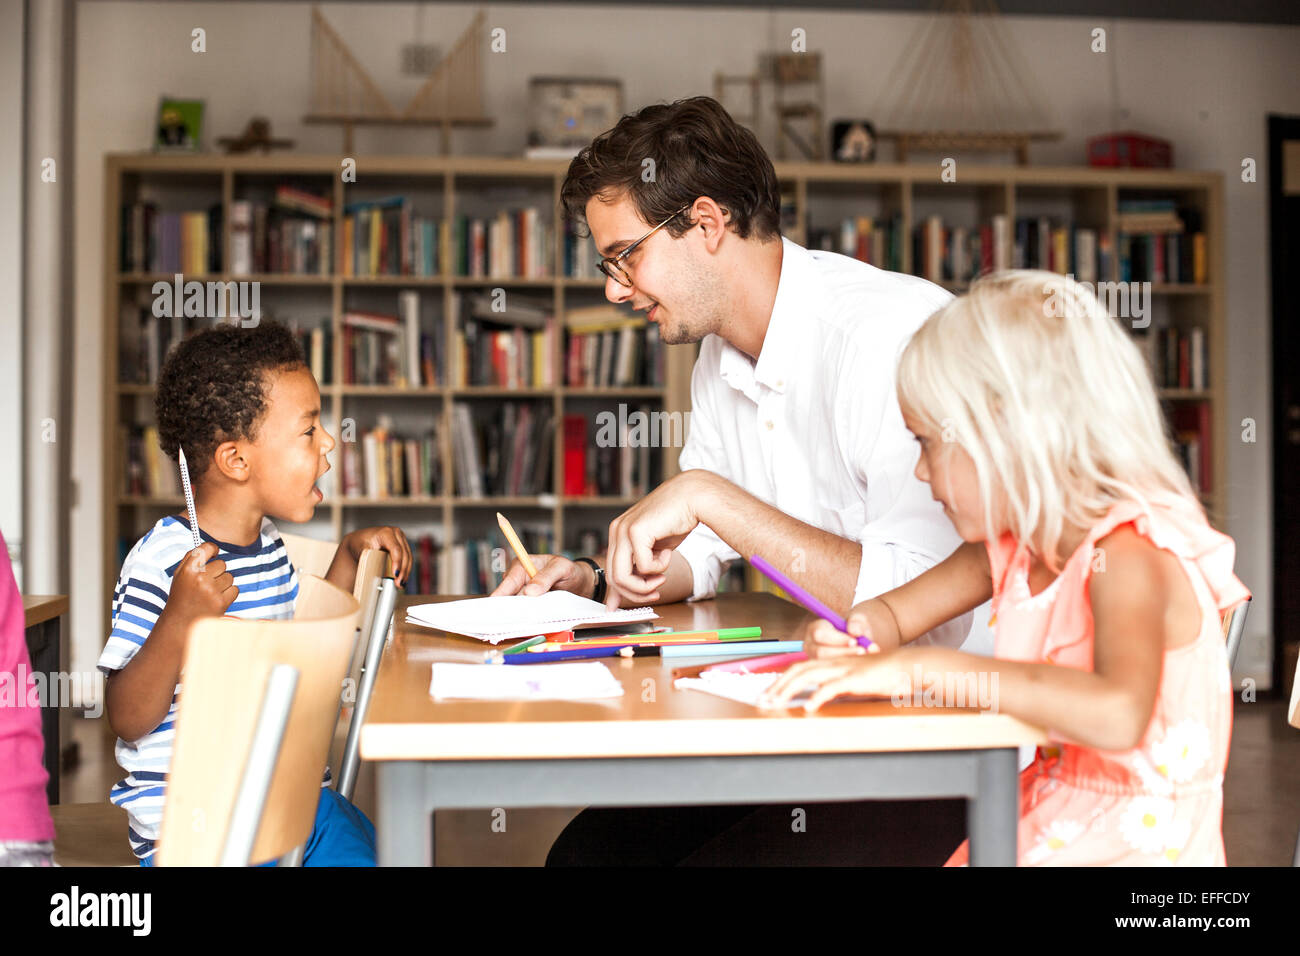 Male teacher teaching students during art class - Stock Image